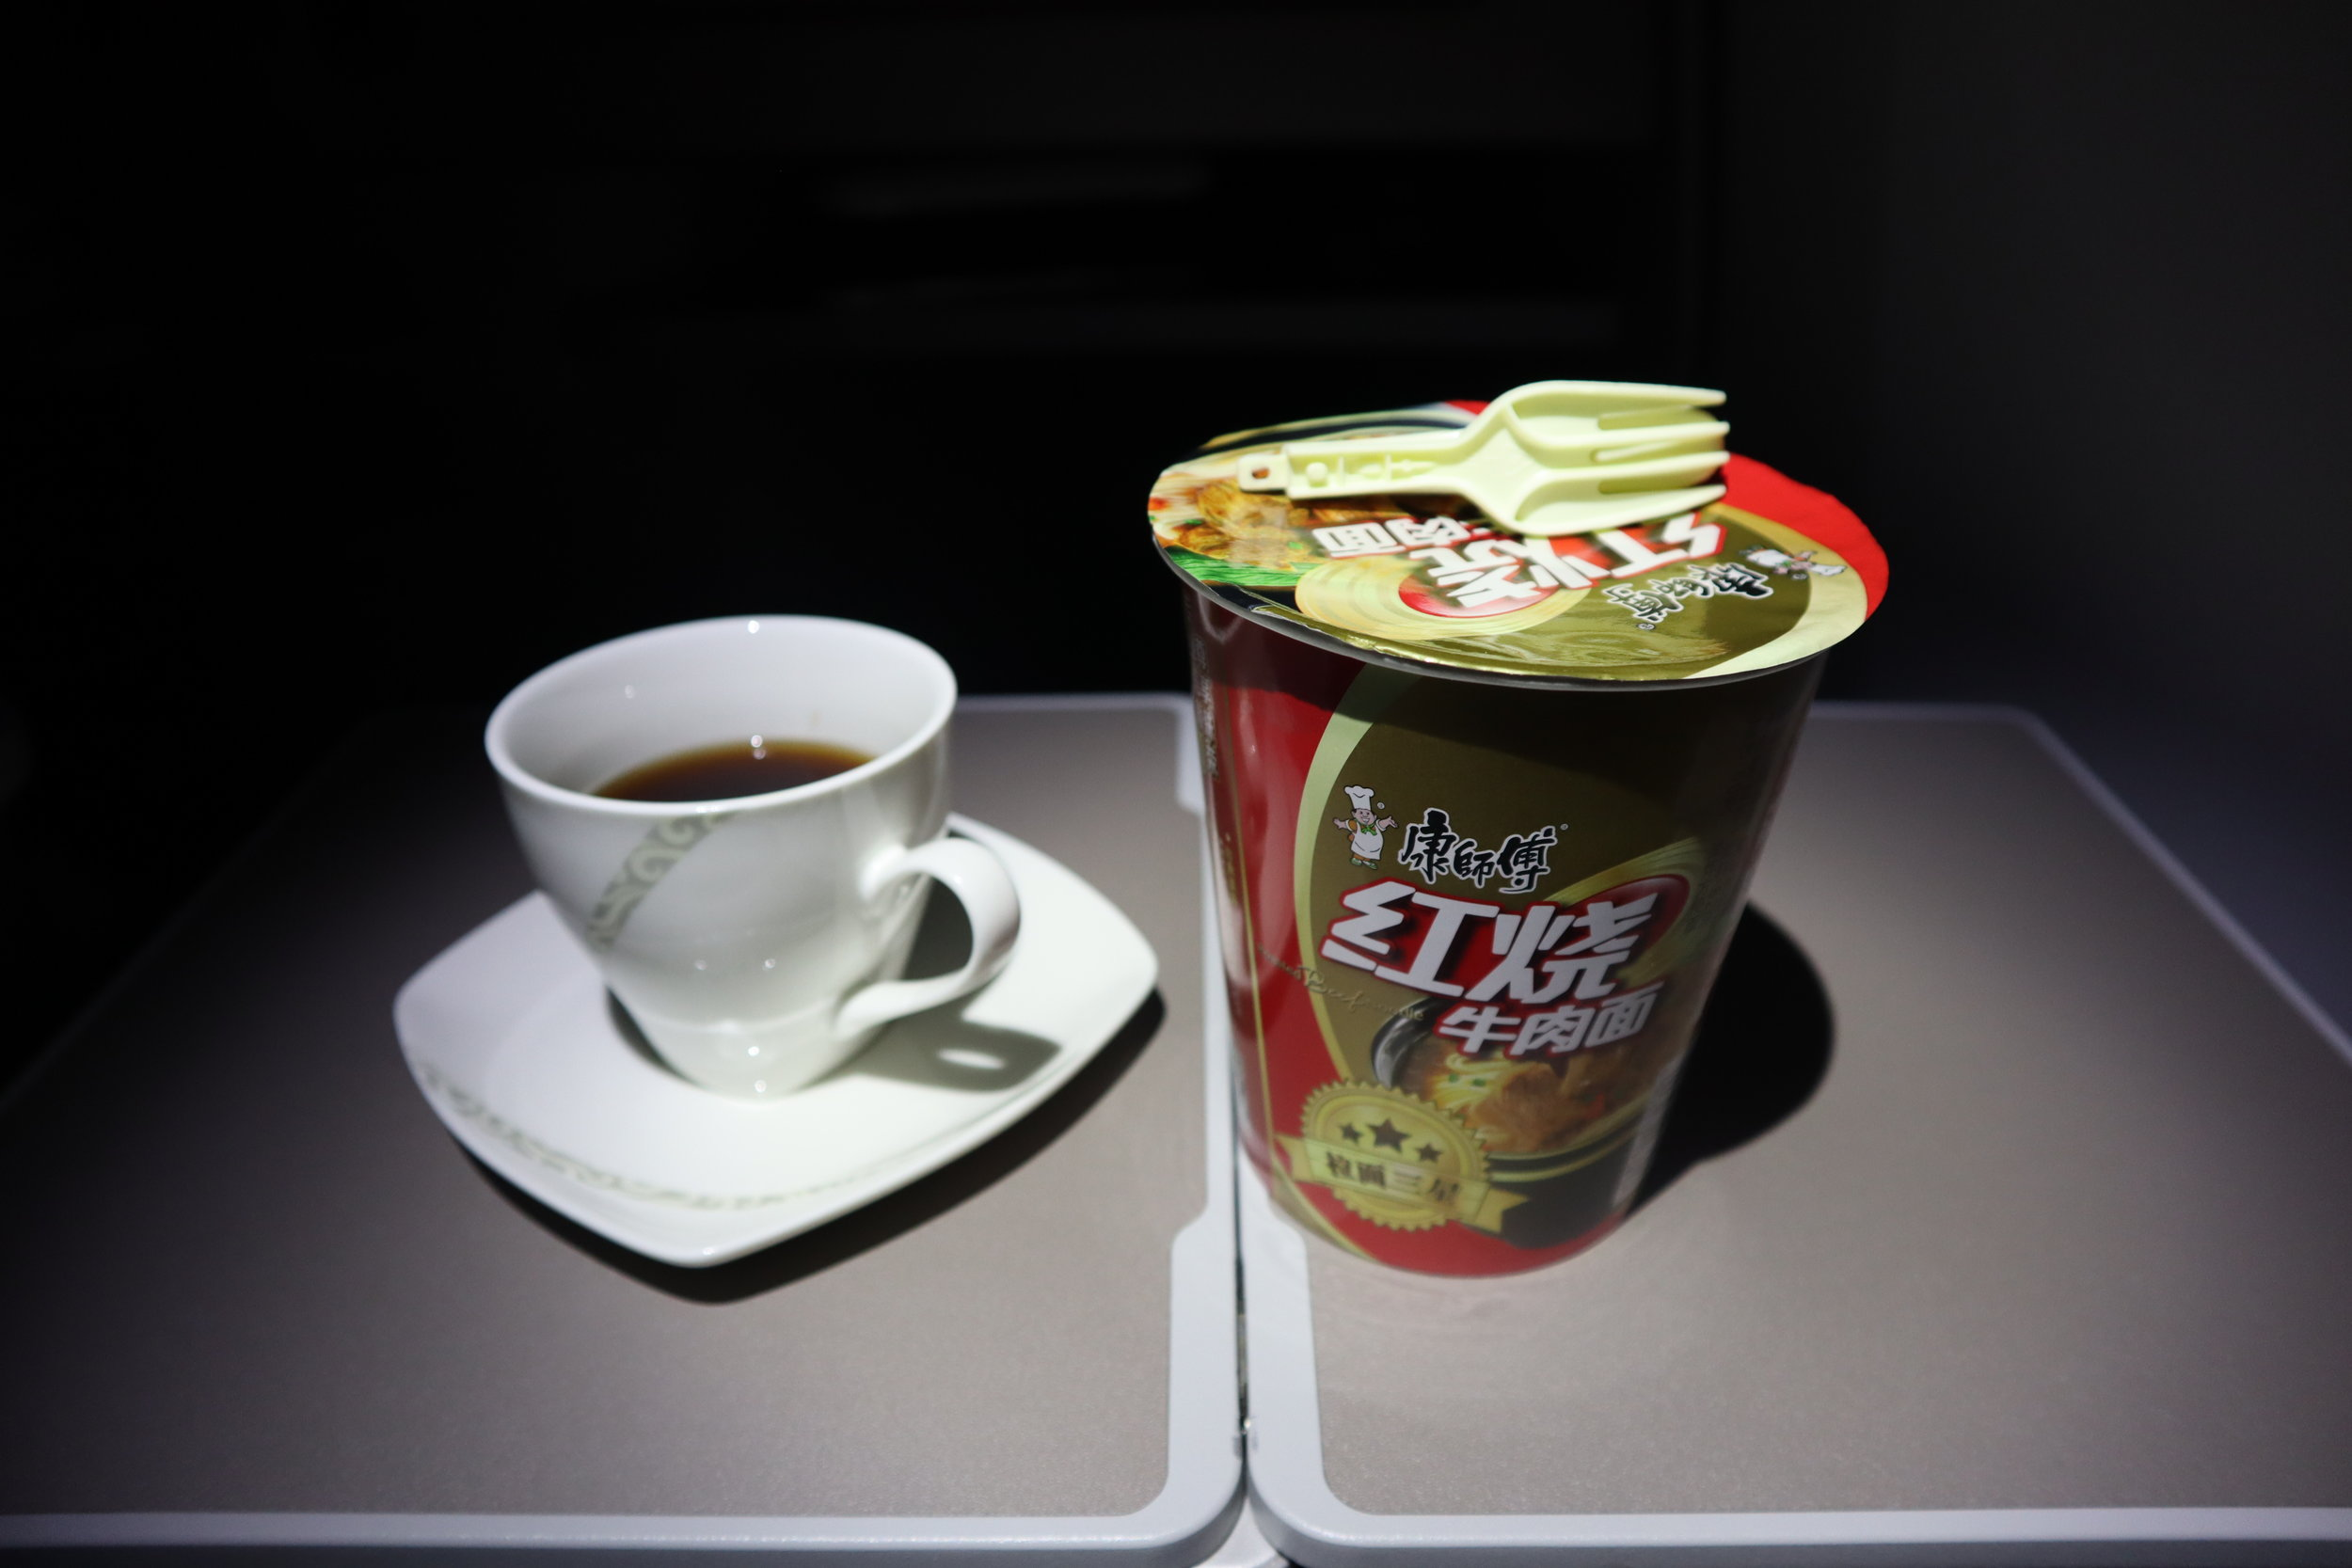 Air China business class – Instant noodles